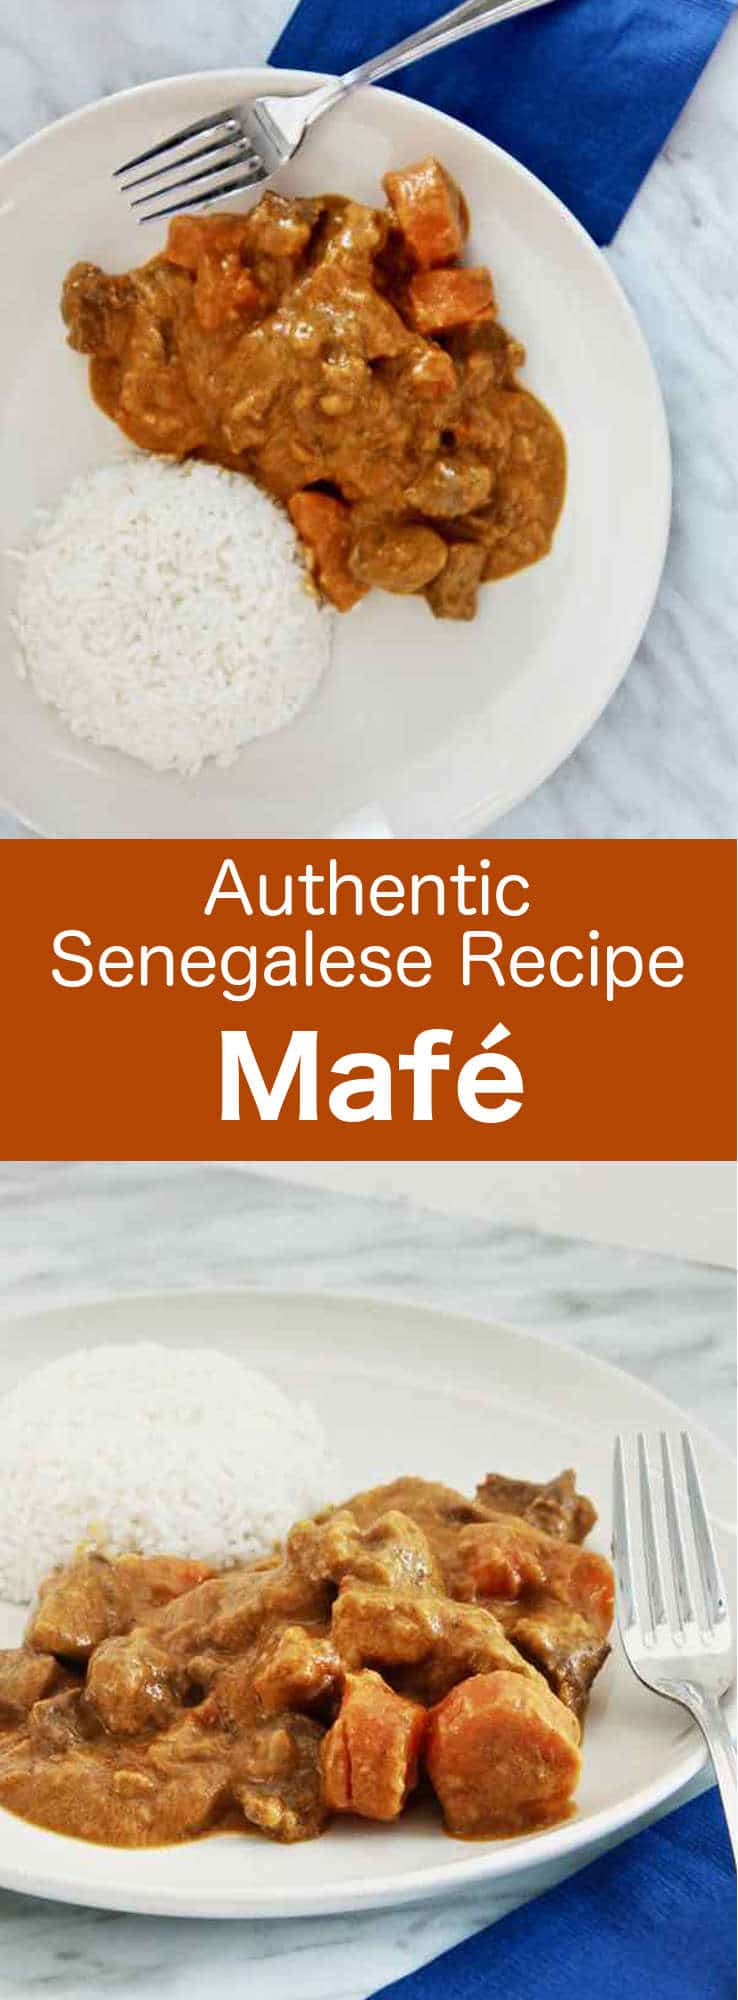 Mafé is a traditional West African recipe that consists of a beef stew cooked in peanut butter and tomatoes. #WestAfrica #Senegal #WestAfricanCuisine #WestAfrican #WorldCuisine #196flavors